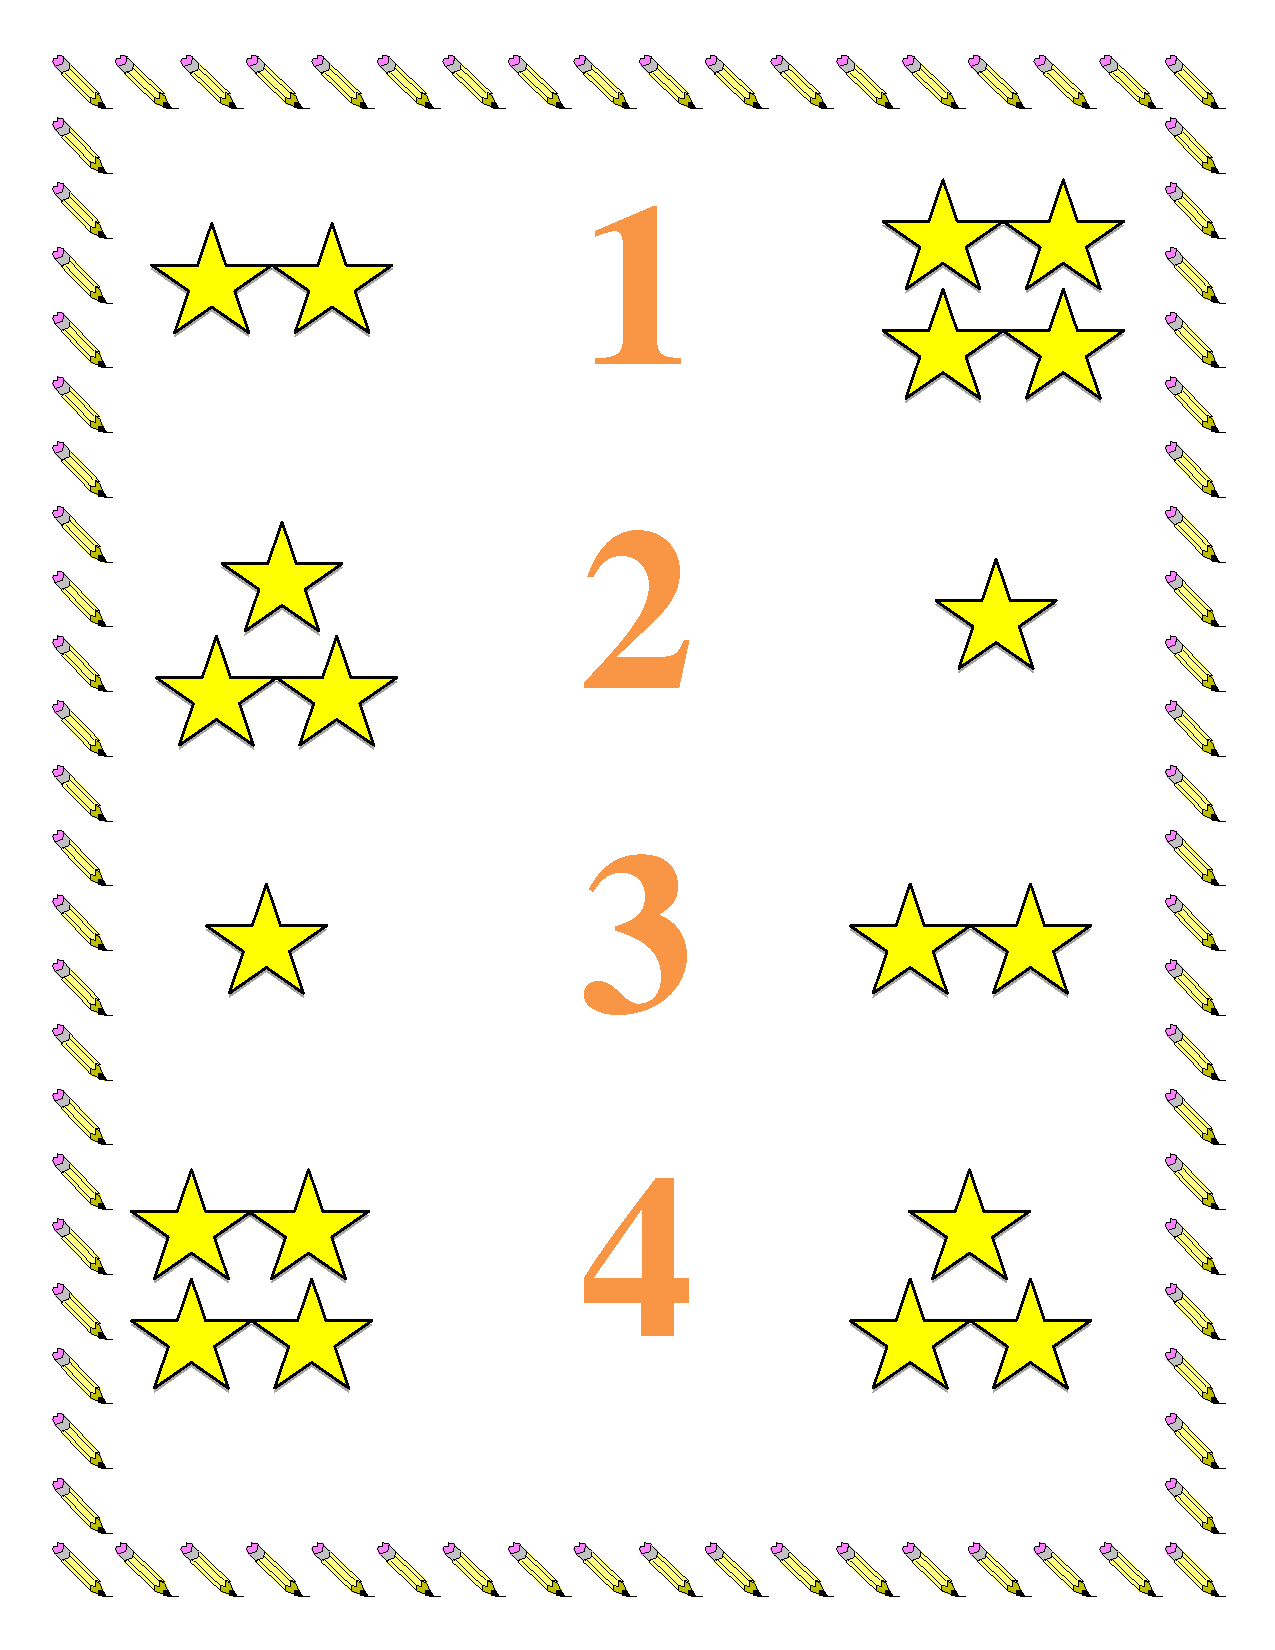 preschool worksheets Preschool Math Worksheet Numbers 14 – Preschool Worksheet